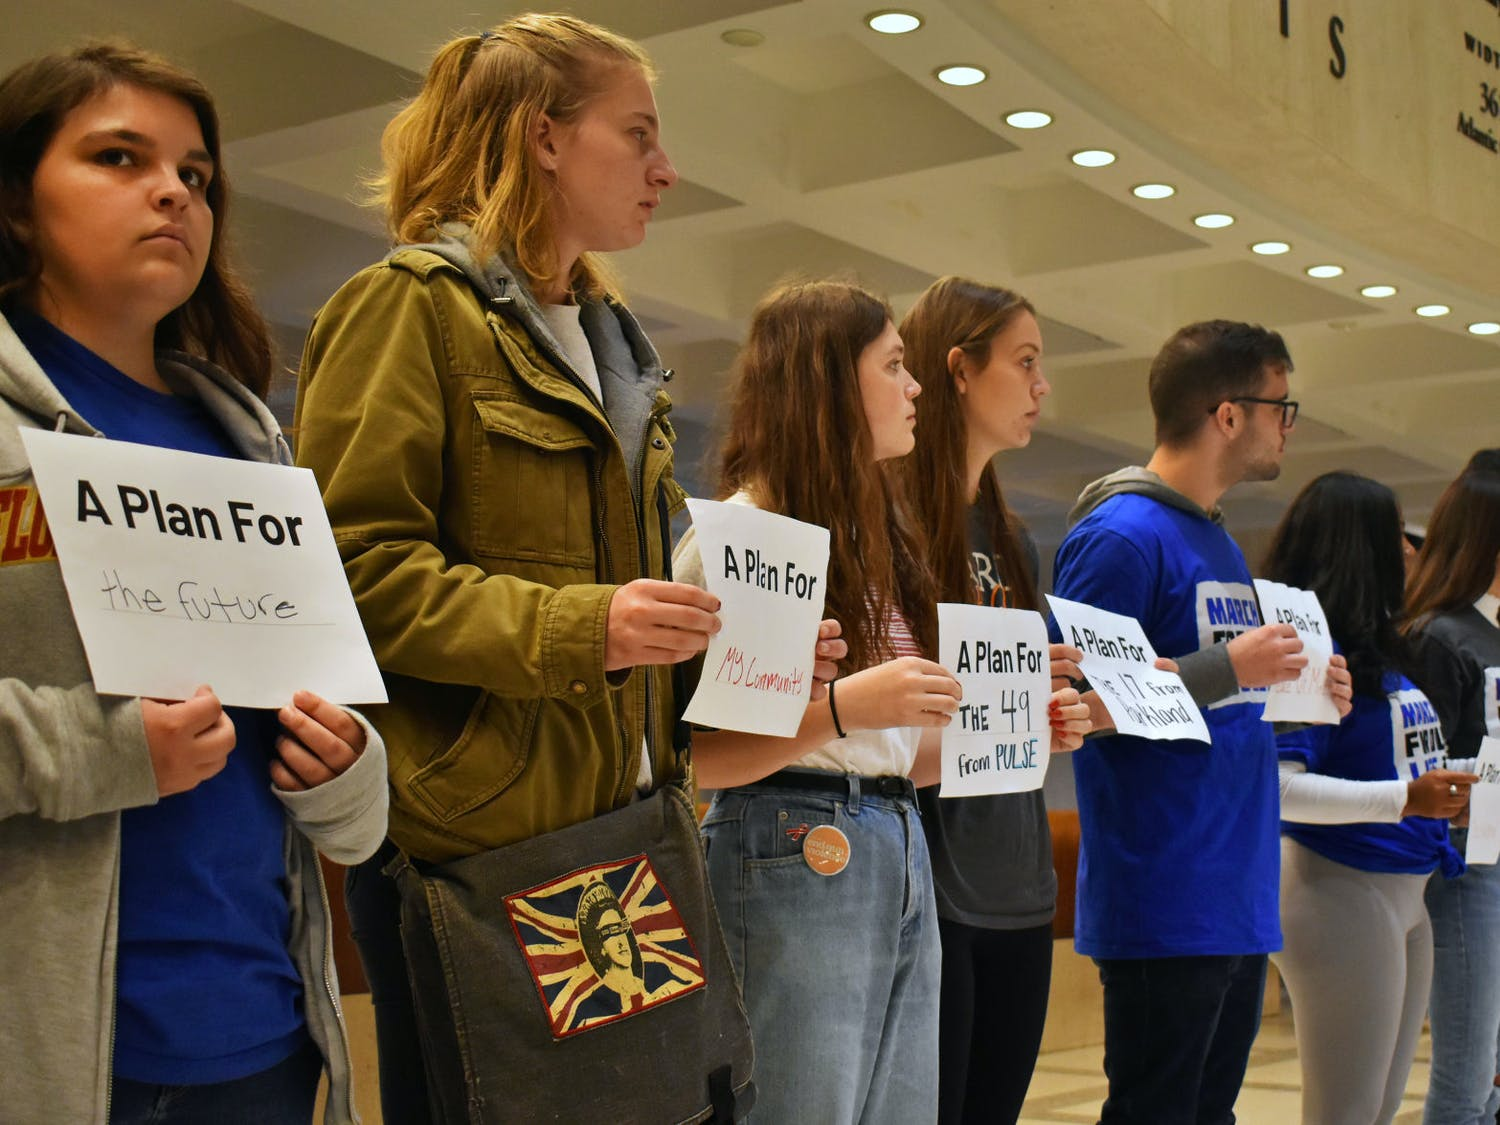 Students and activists demonstrated inside the Florida State Capitol building Thursday, holding filled-in signs representing what the Peace Plan for a Safer Florida means to them.